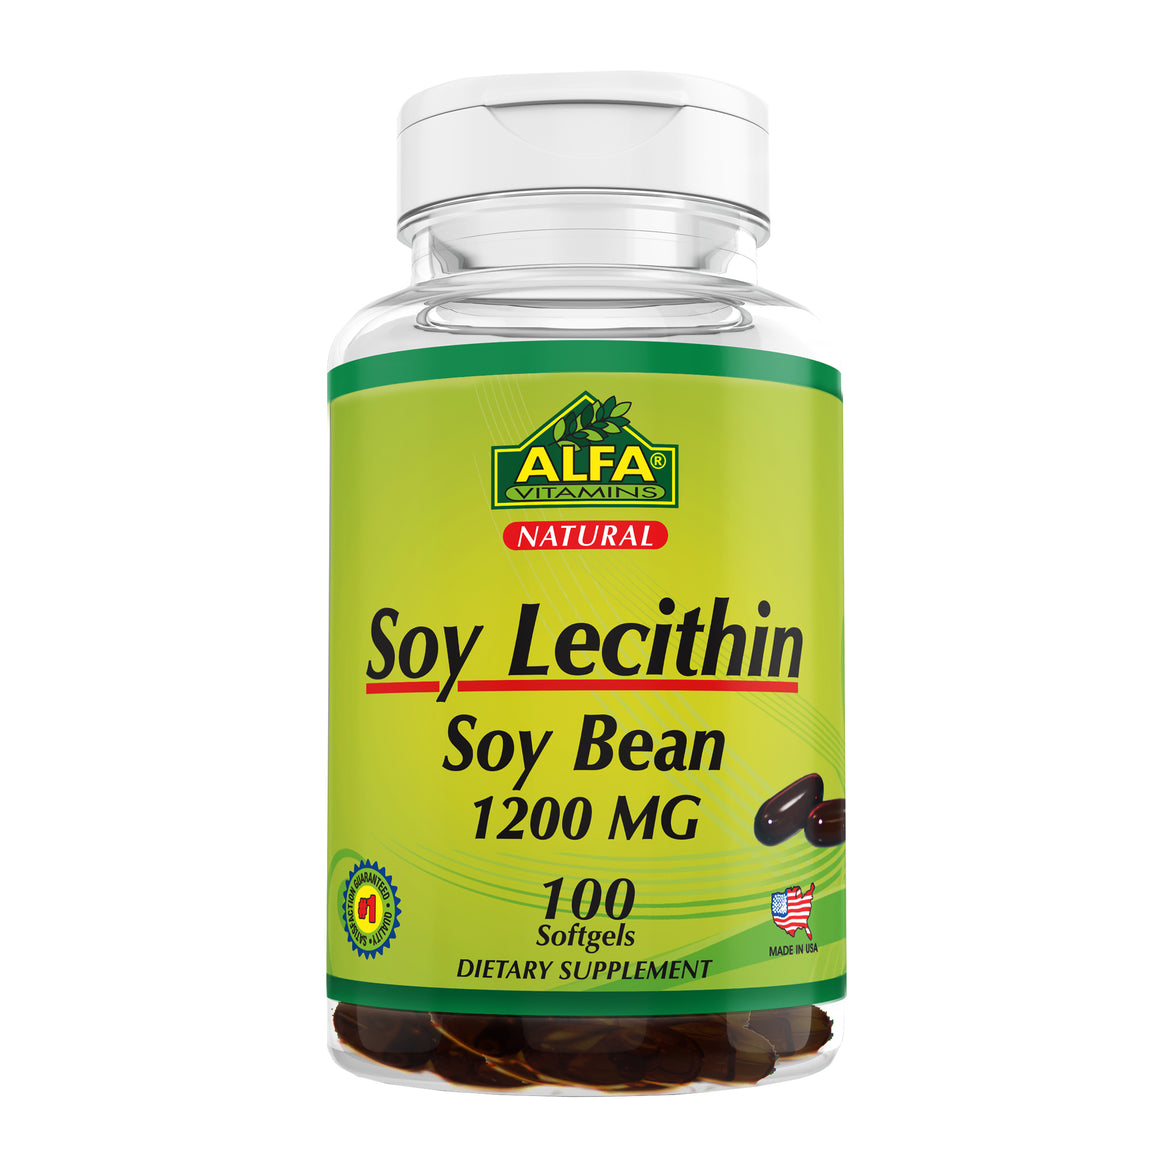 Soy Lecithin 1200 mg - 100 softgels